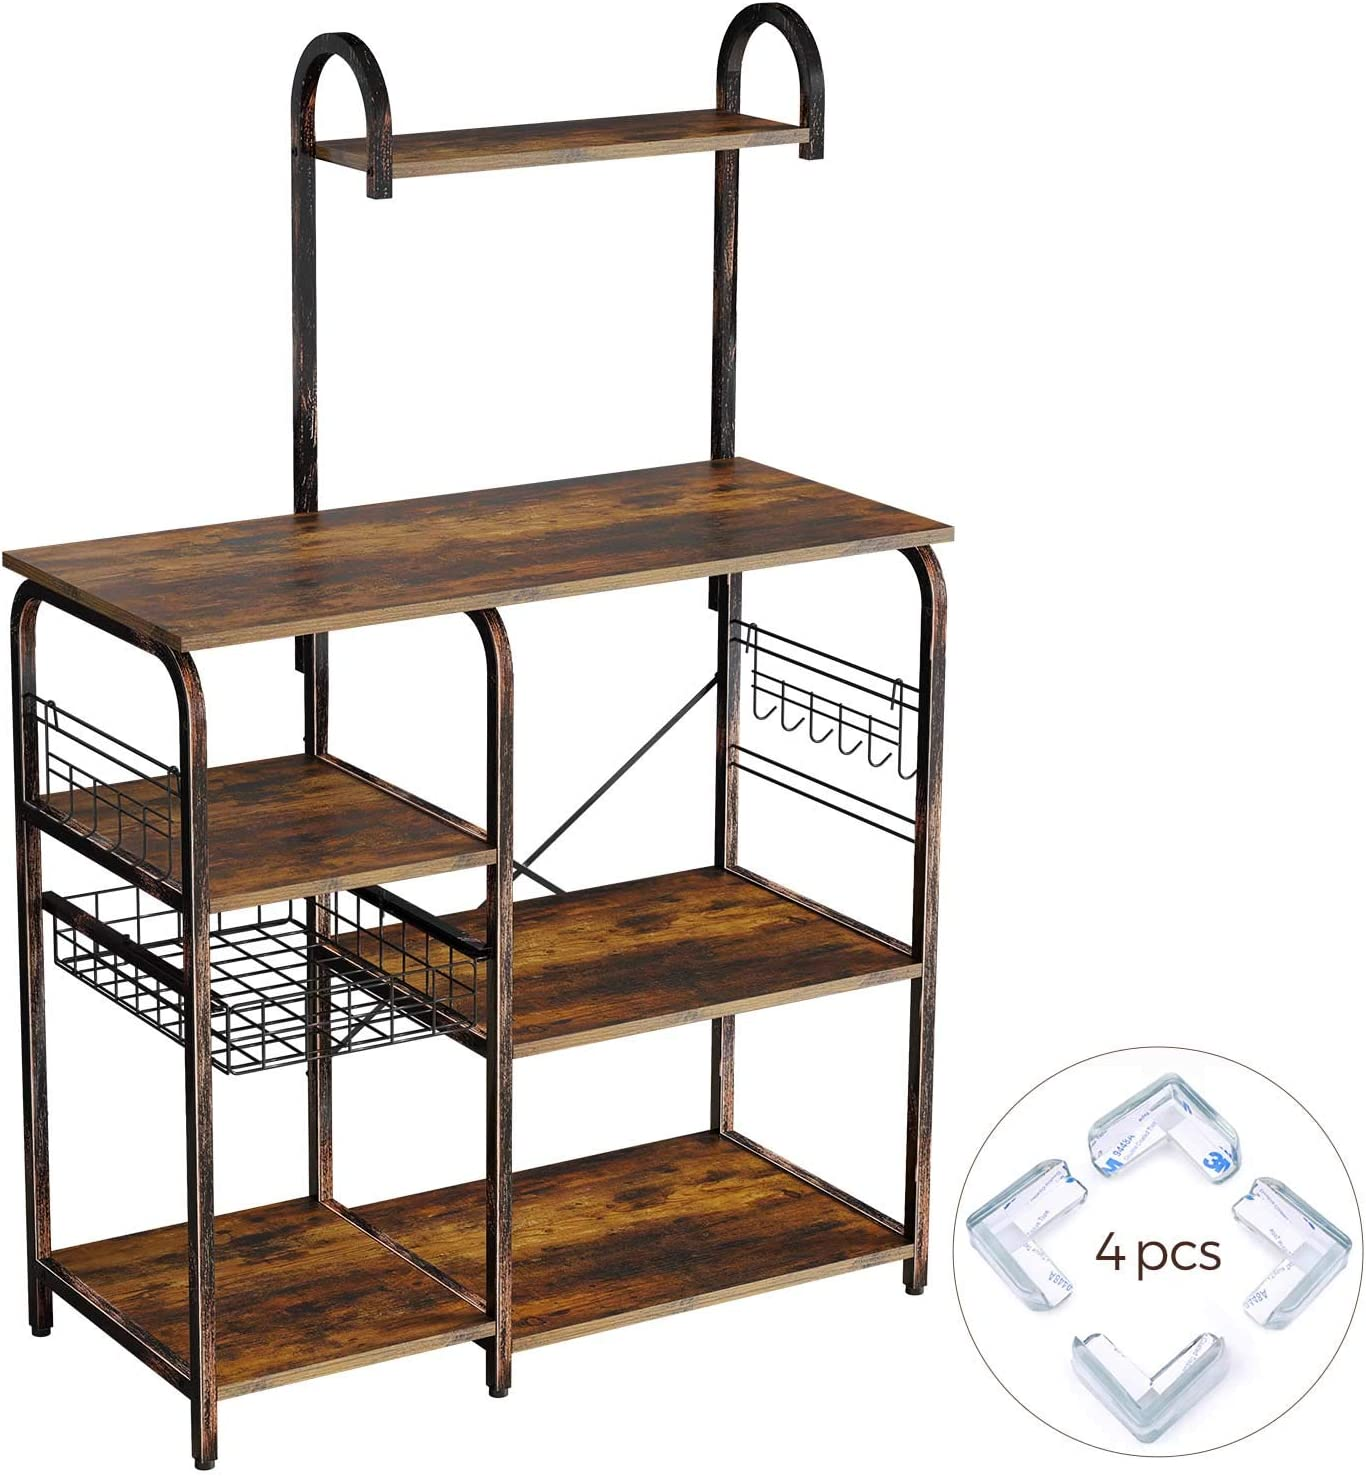 Rolanstar Kitchen Baker's Rack, Large Capacity Utility Storage Shelf, Microwave Stand with 7 Shelves and 12 Hooks, Foldable Pull Basket, Stable Retro Metal Frame